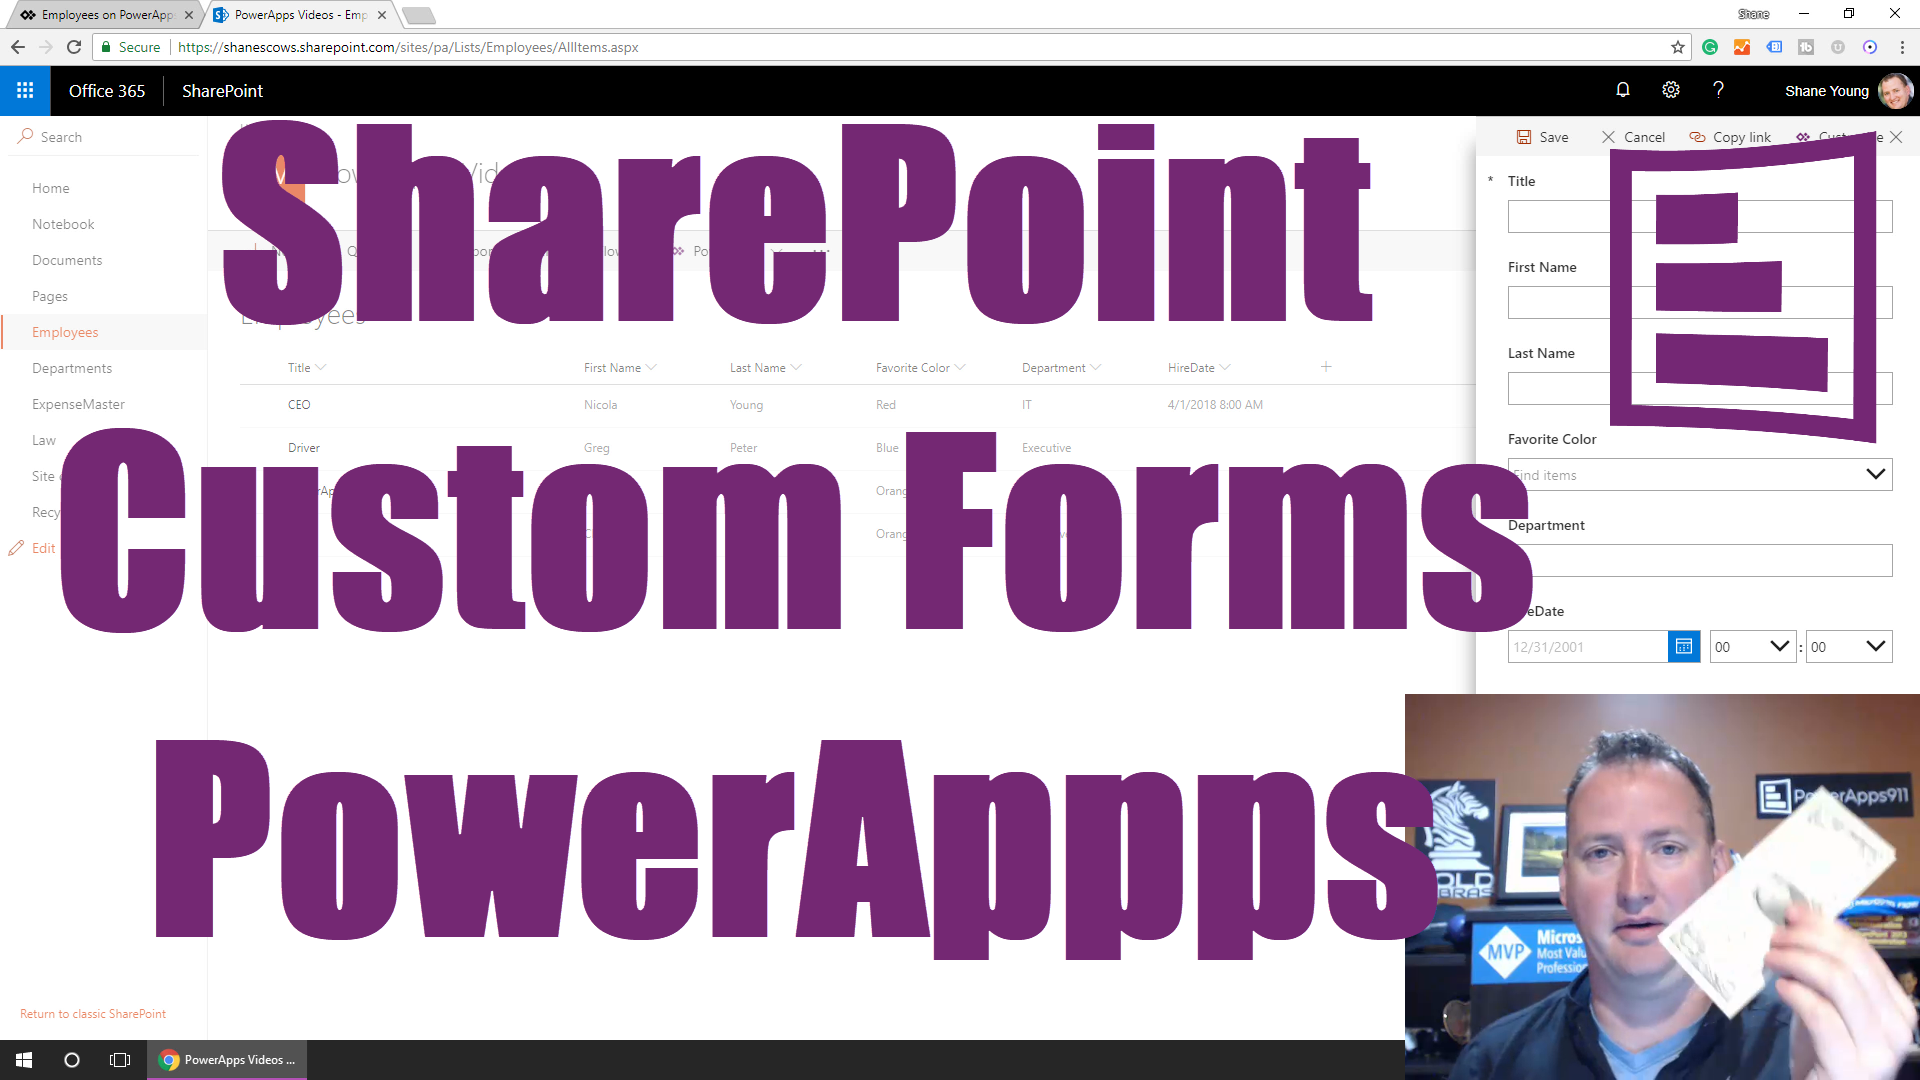 Learn to customize SharePoint List forms with PowerApps